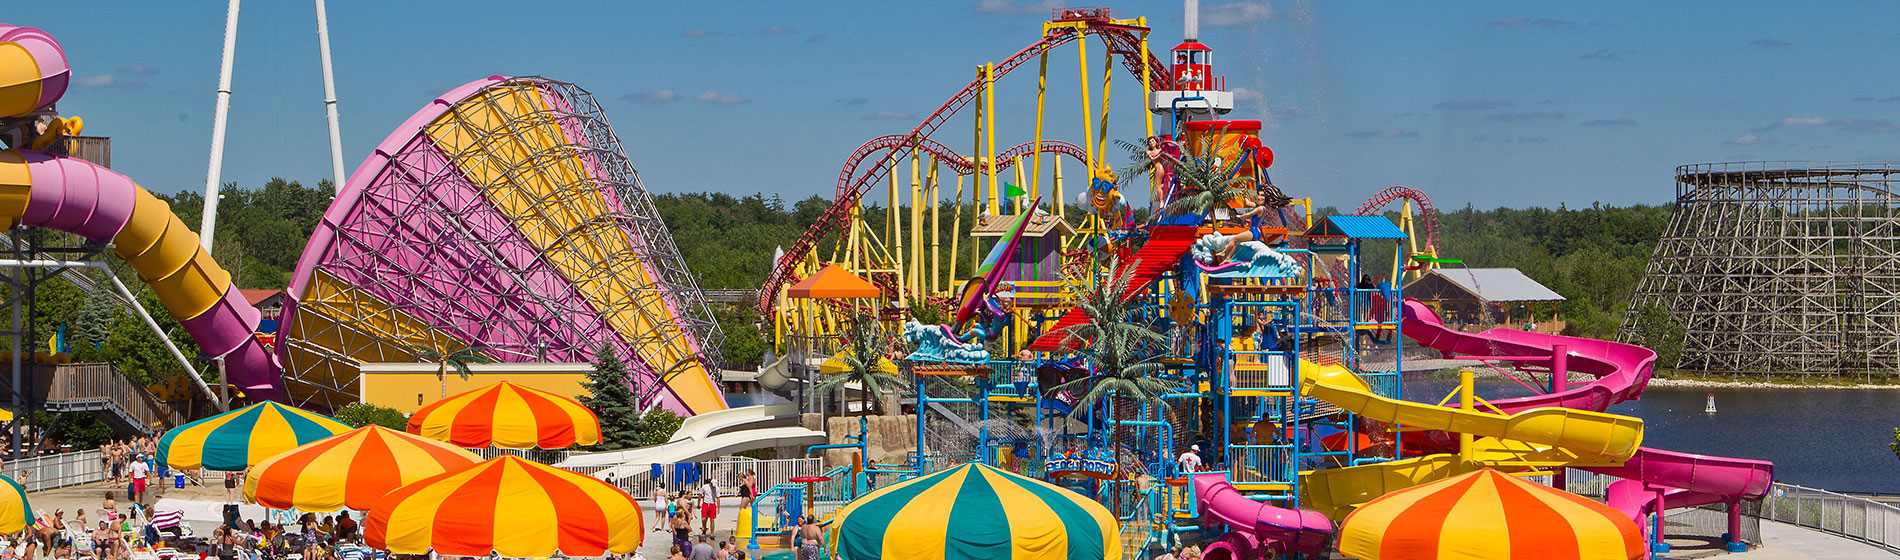 Extreme Water Slides & Attractions at Michigan's Adventure's Water Park